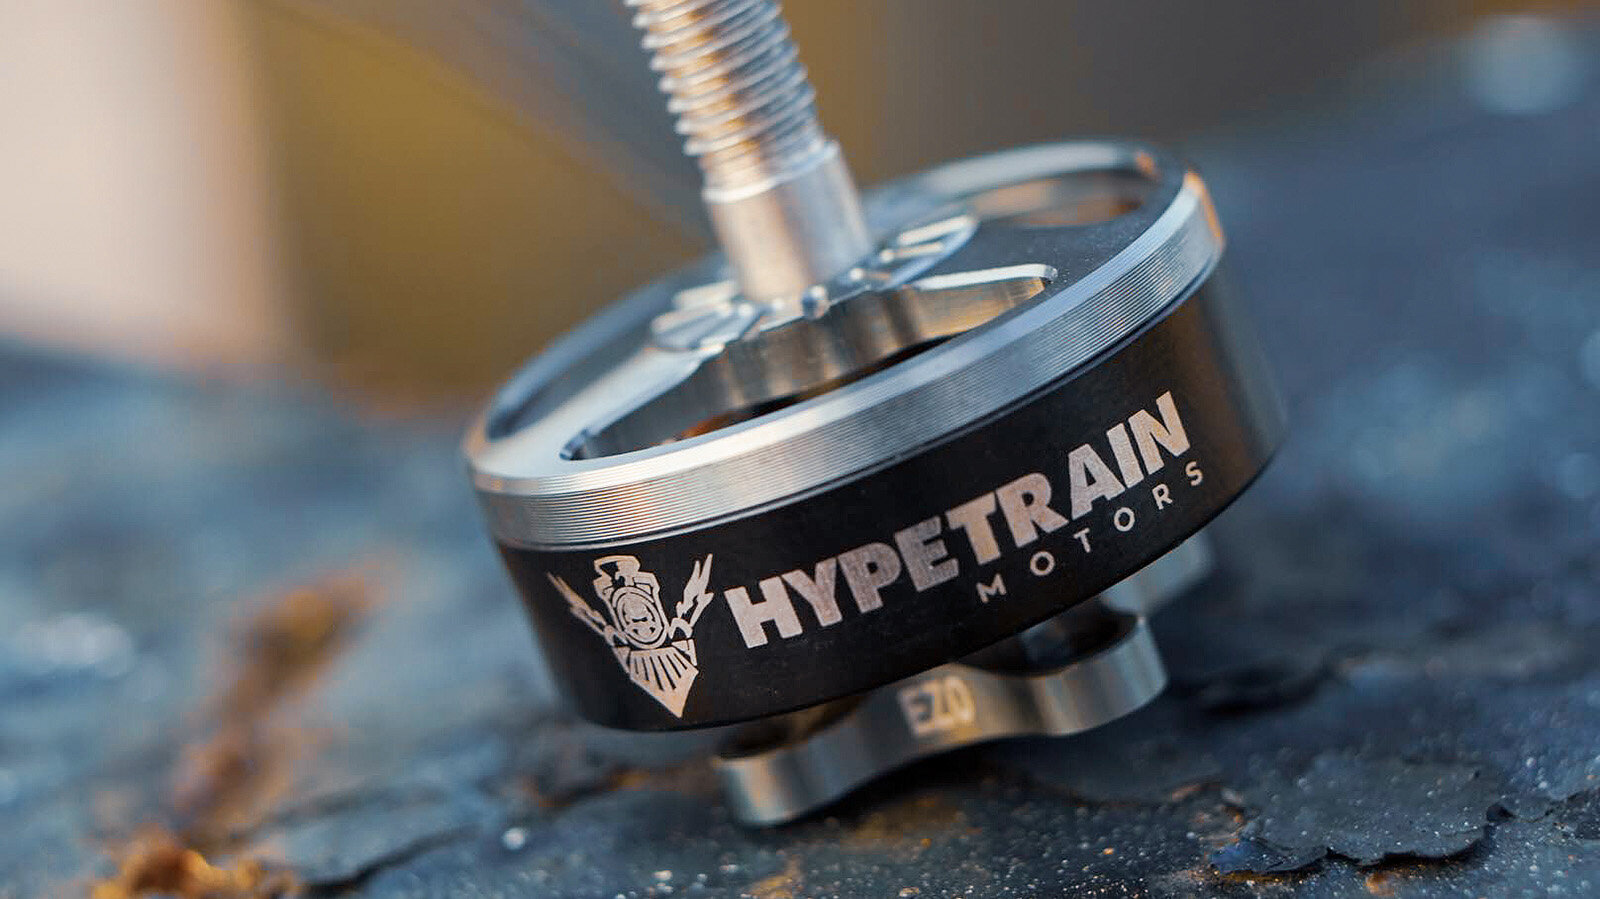 Hypetrain-Freestyle-2306-2450KV-images-creative-photo-2.jpg